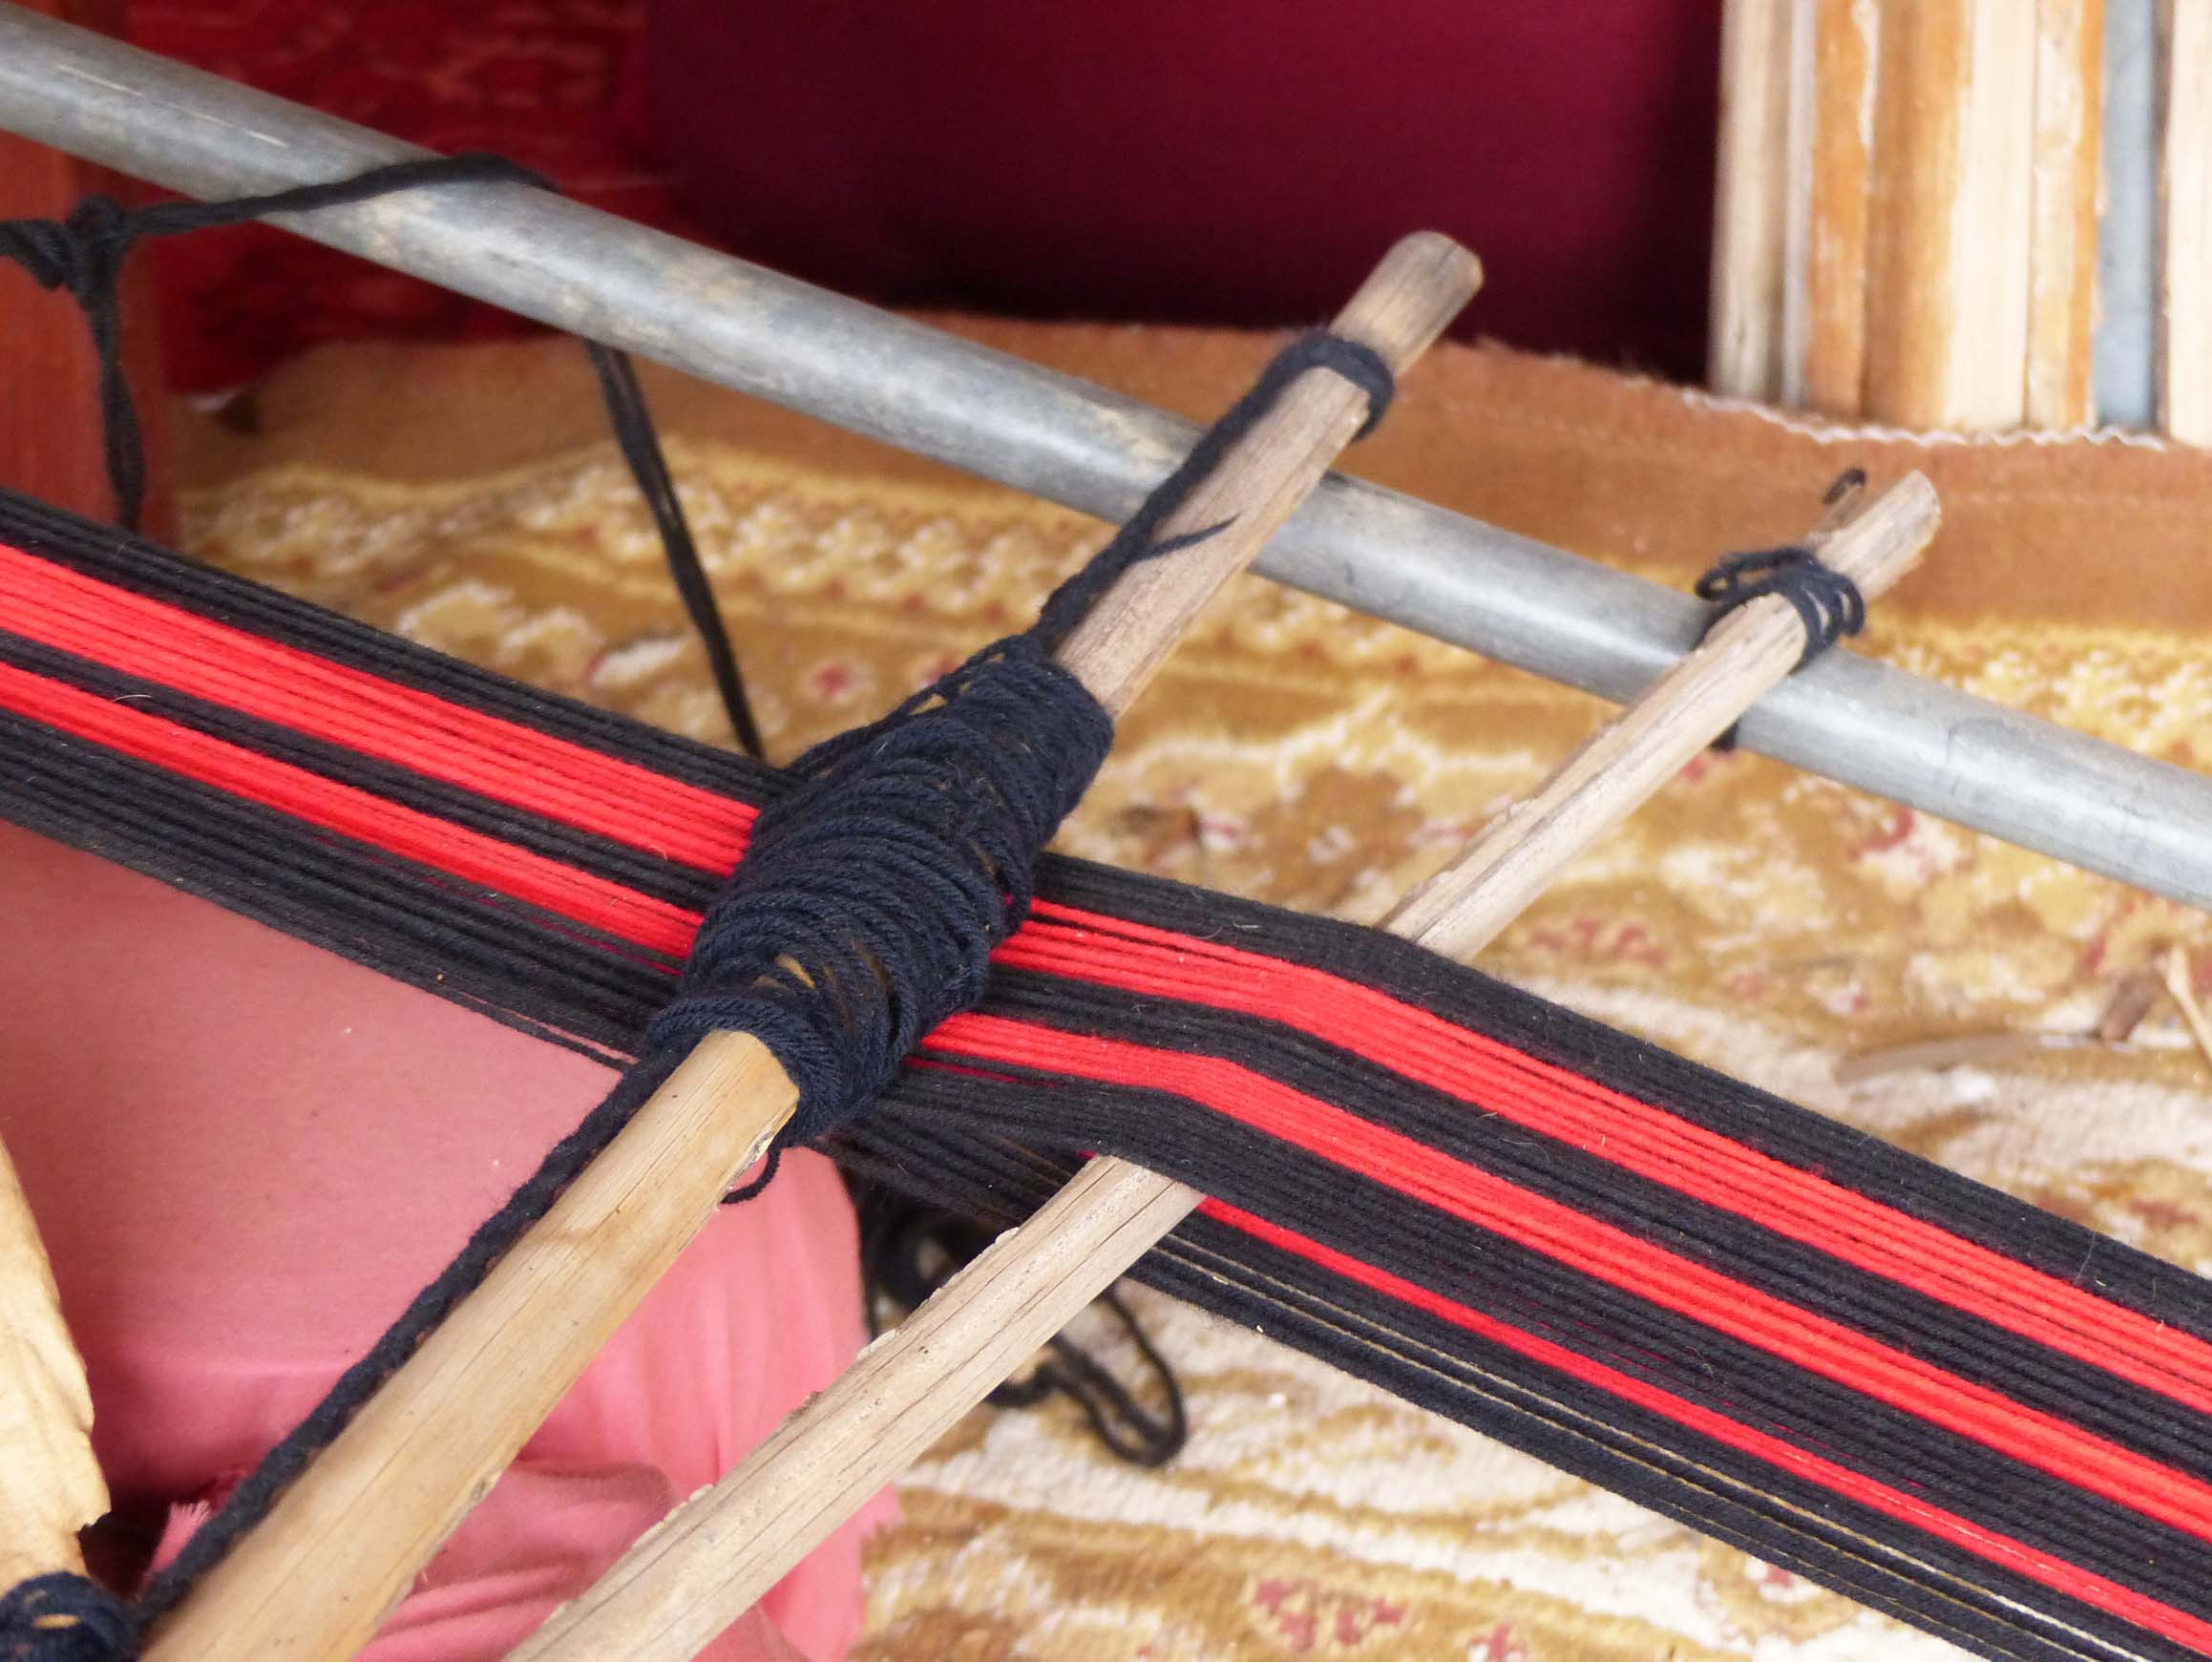 Simple loom with red and black thread